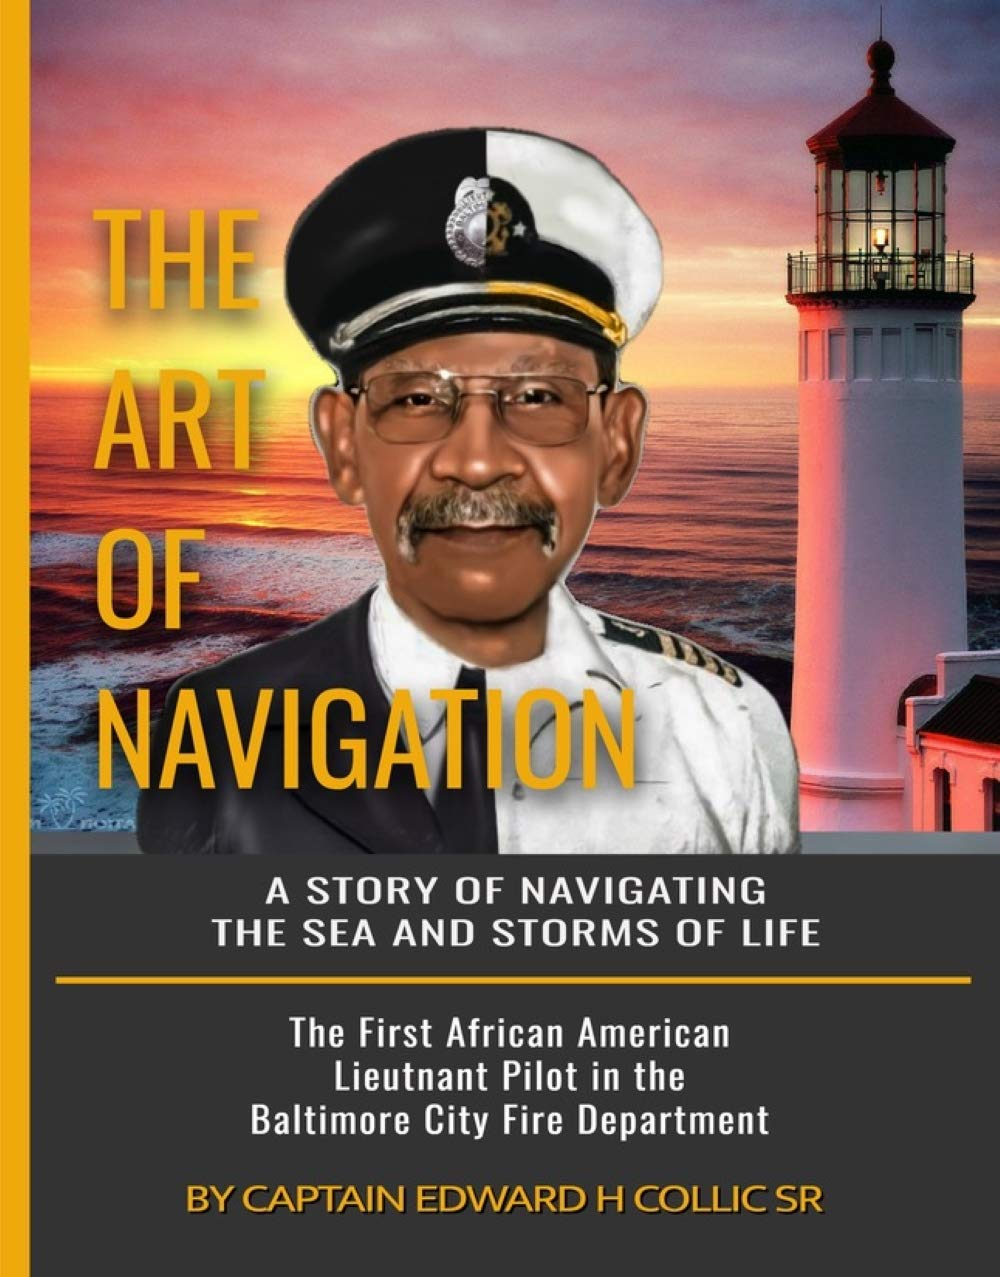 The Art of Navigation: A Story of Navigating the Sea and Storms of Life